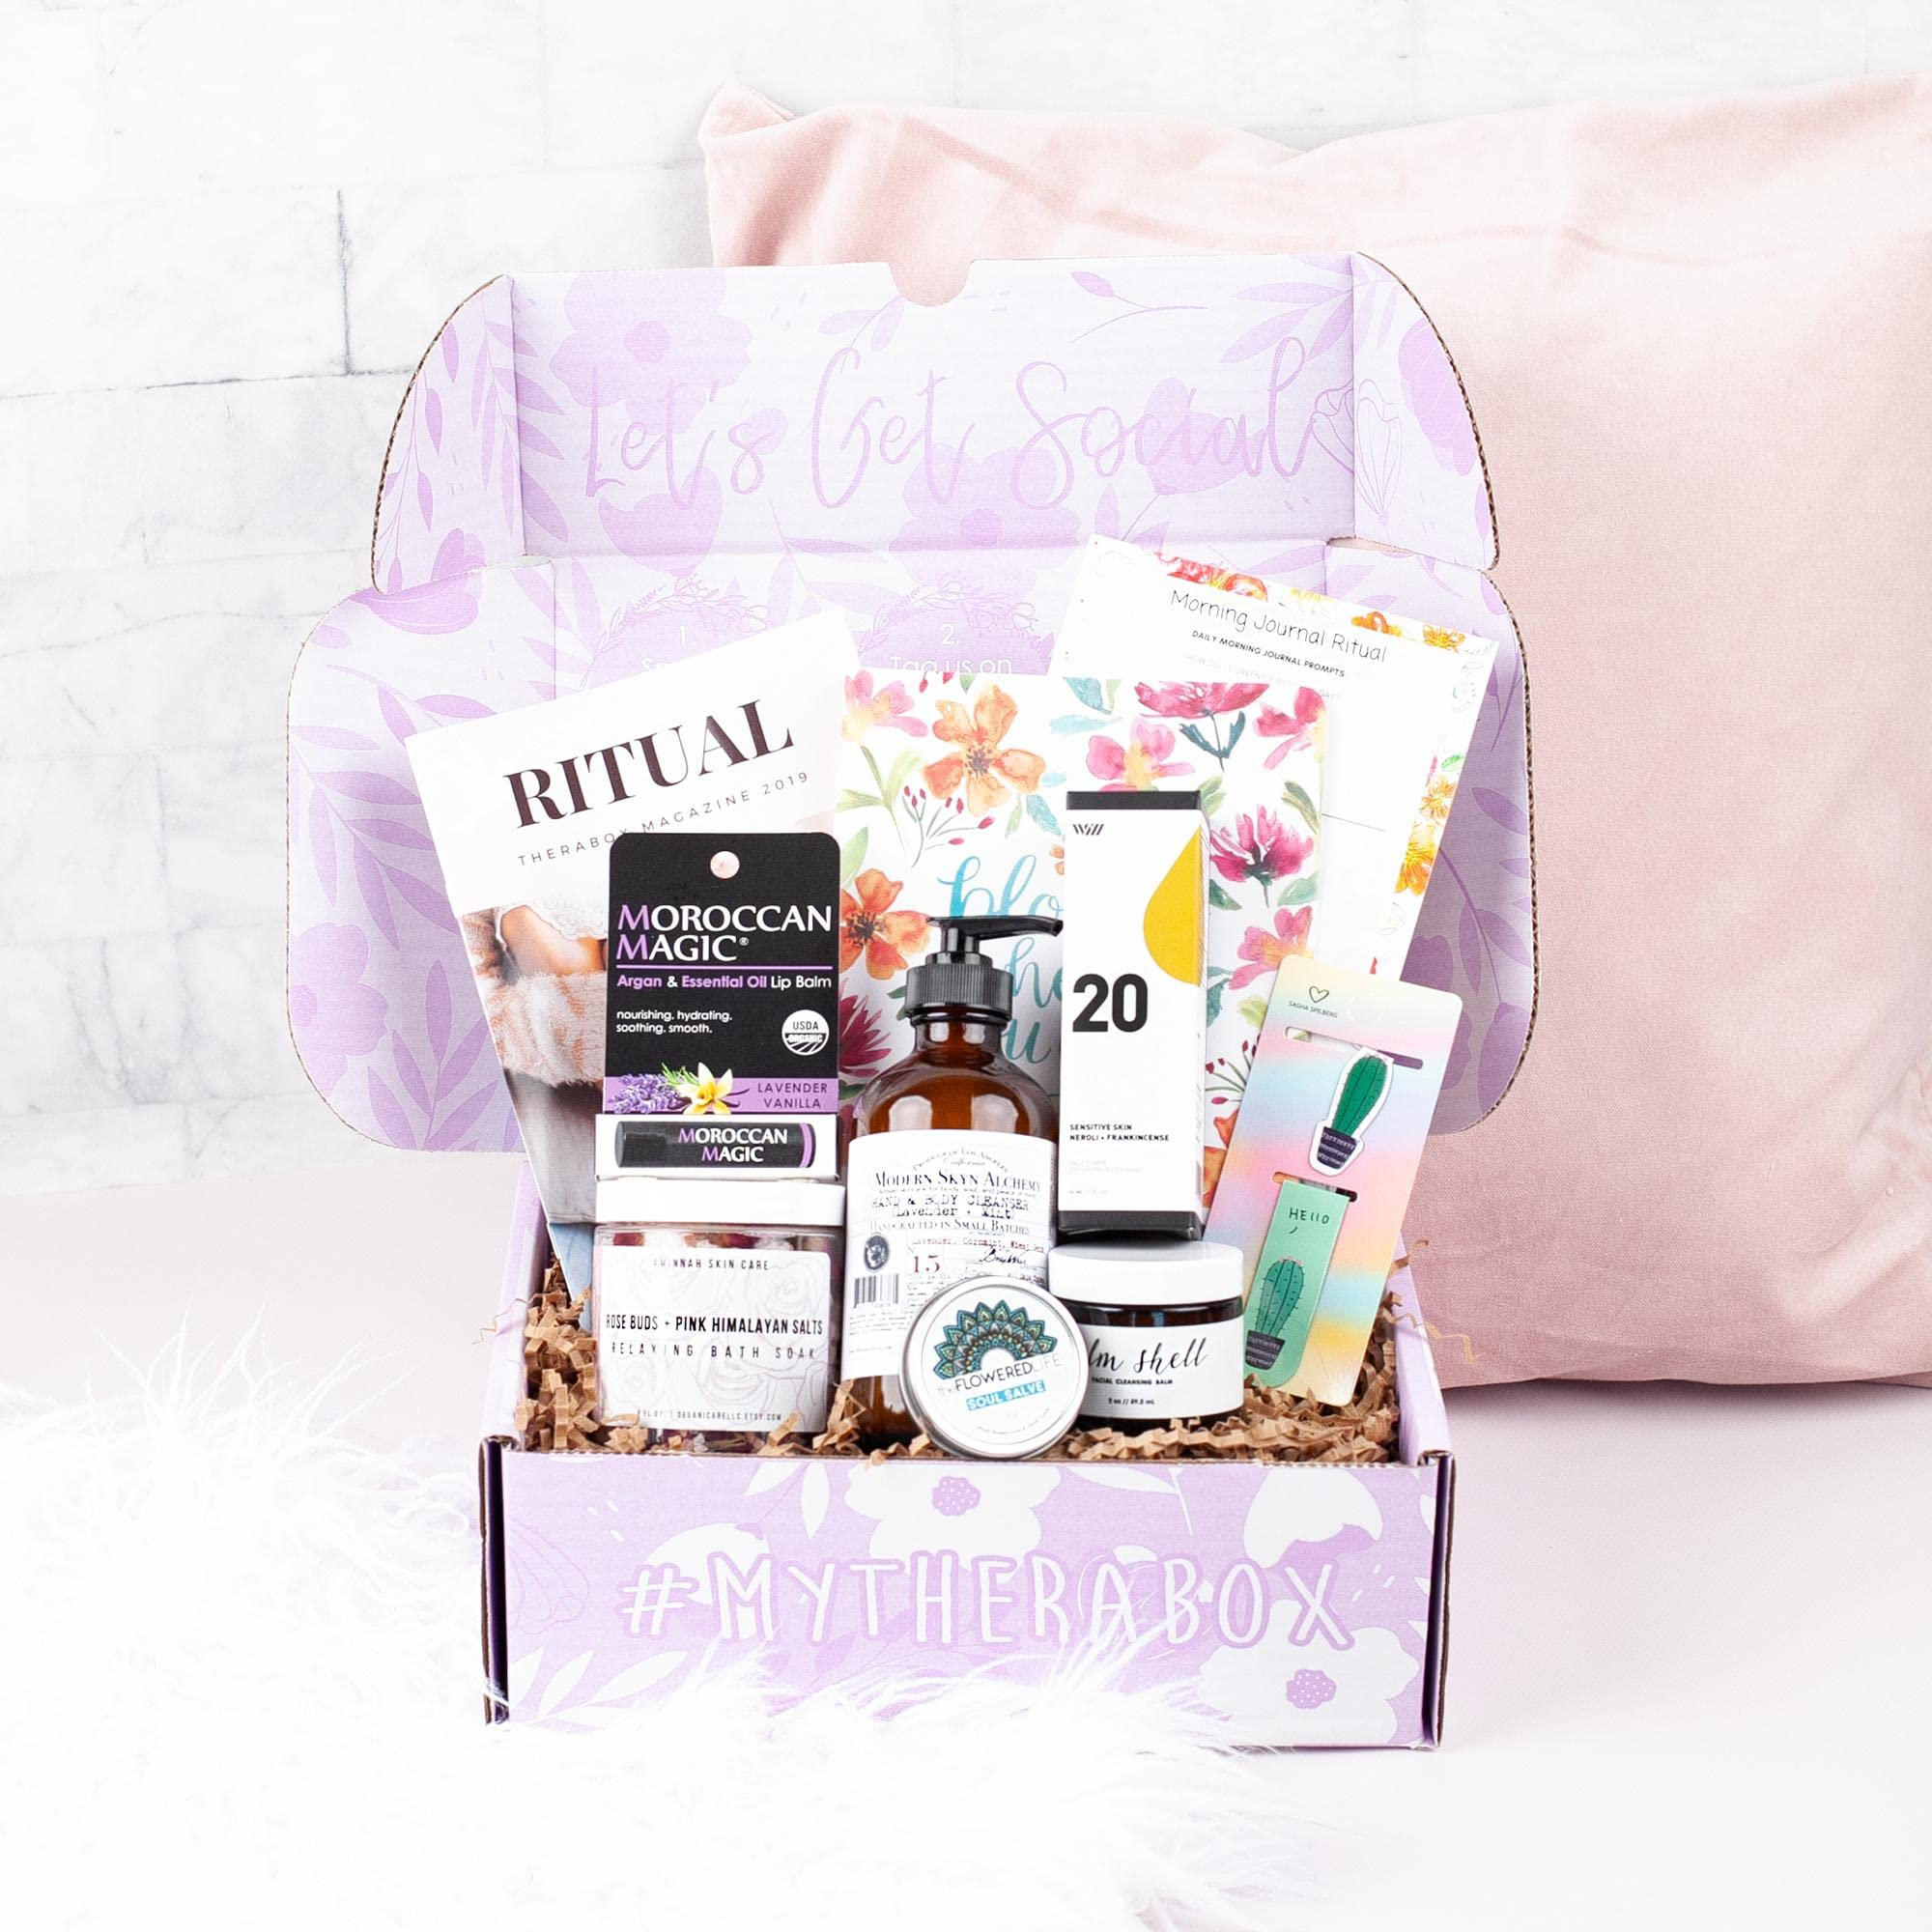 Therabox subscription box. Best subscription boxes for self care and wellness. Best self care gift box. Self care gift basket for her.